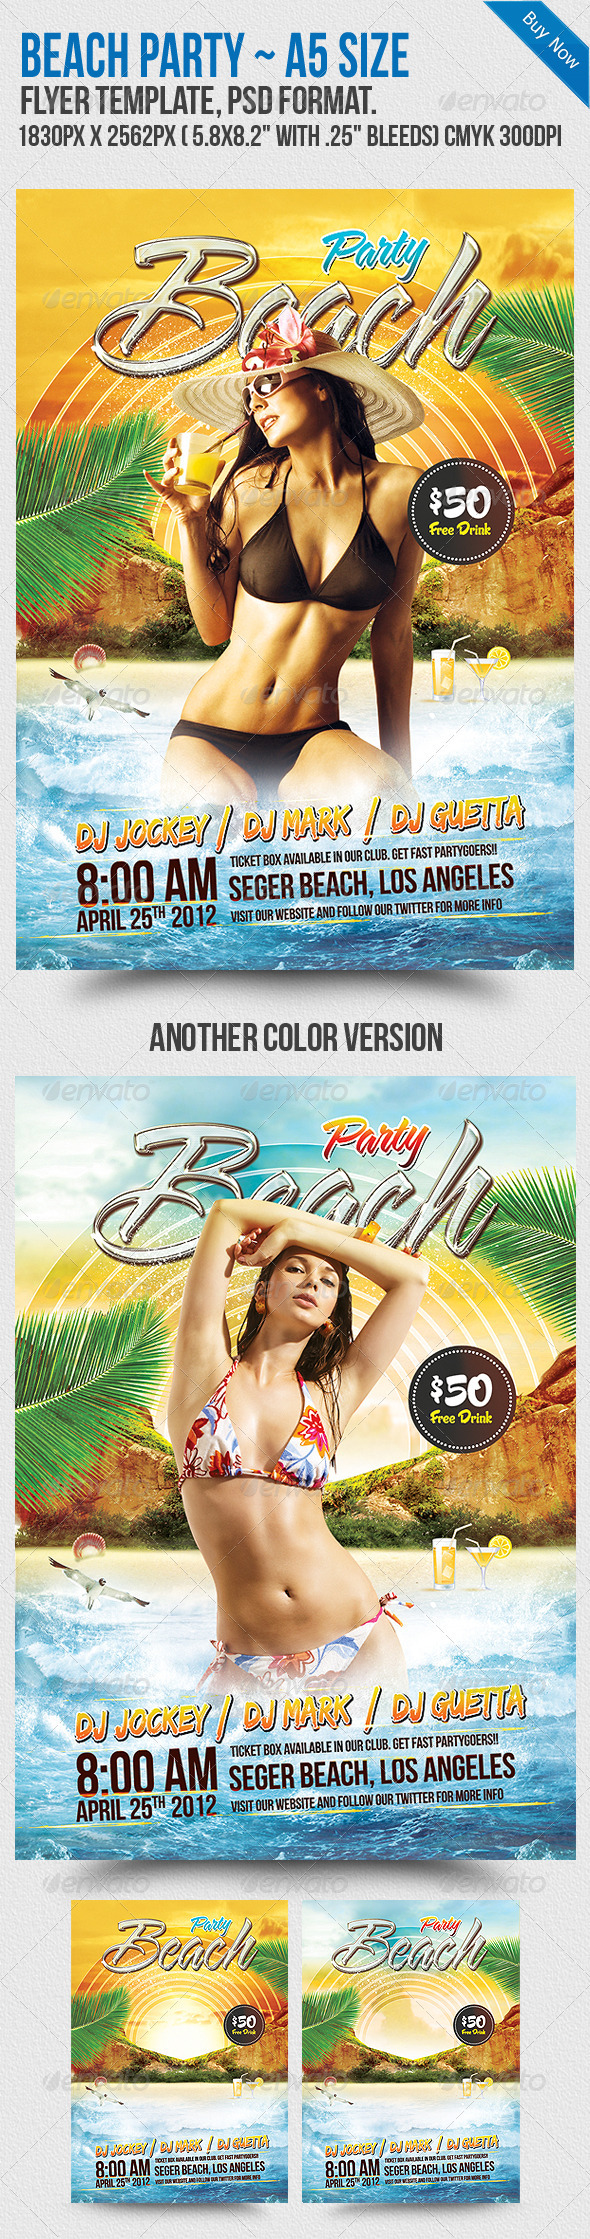 Beach Party A5 Flyer Template - Flyers Print Templates